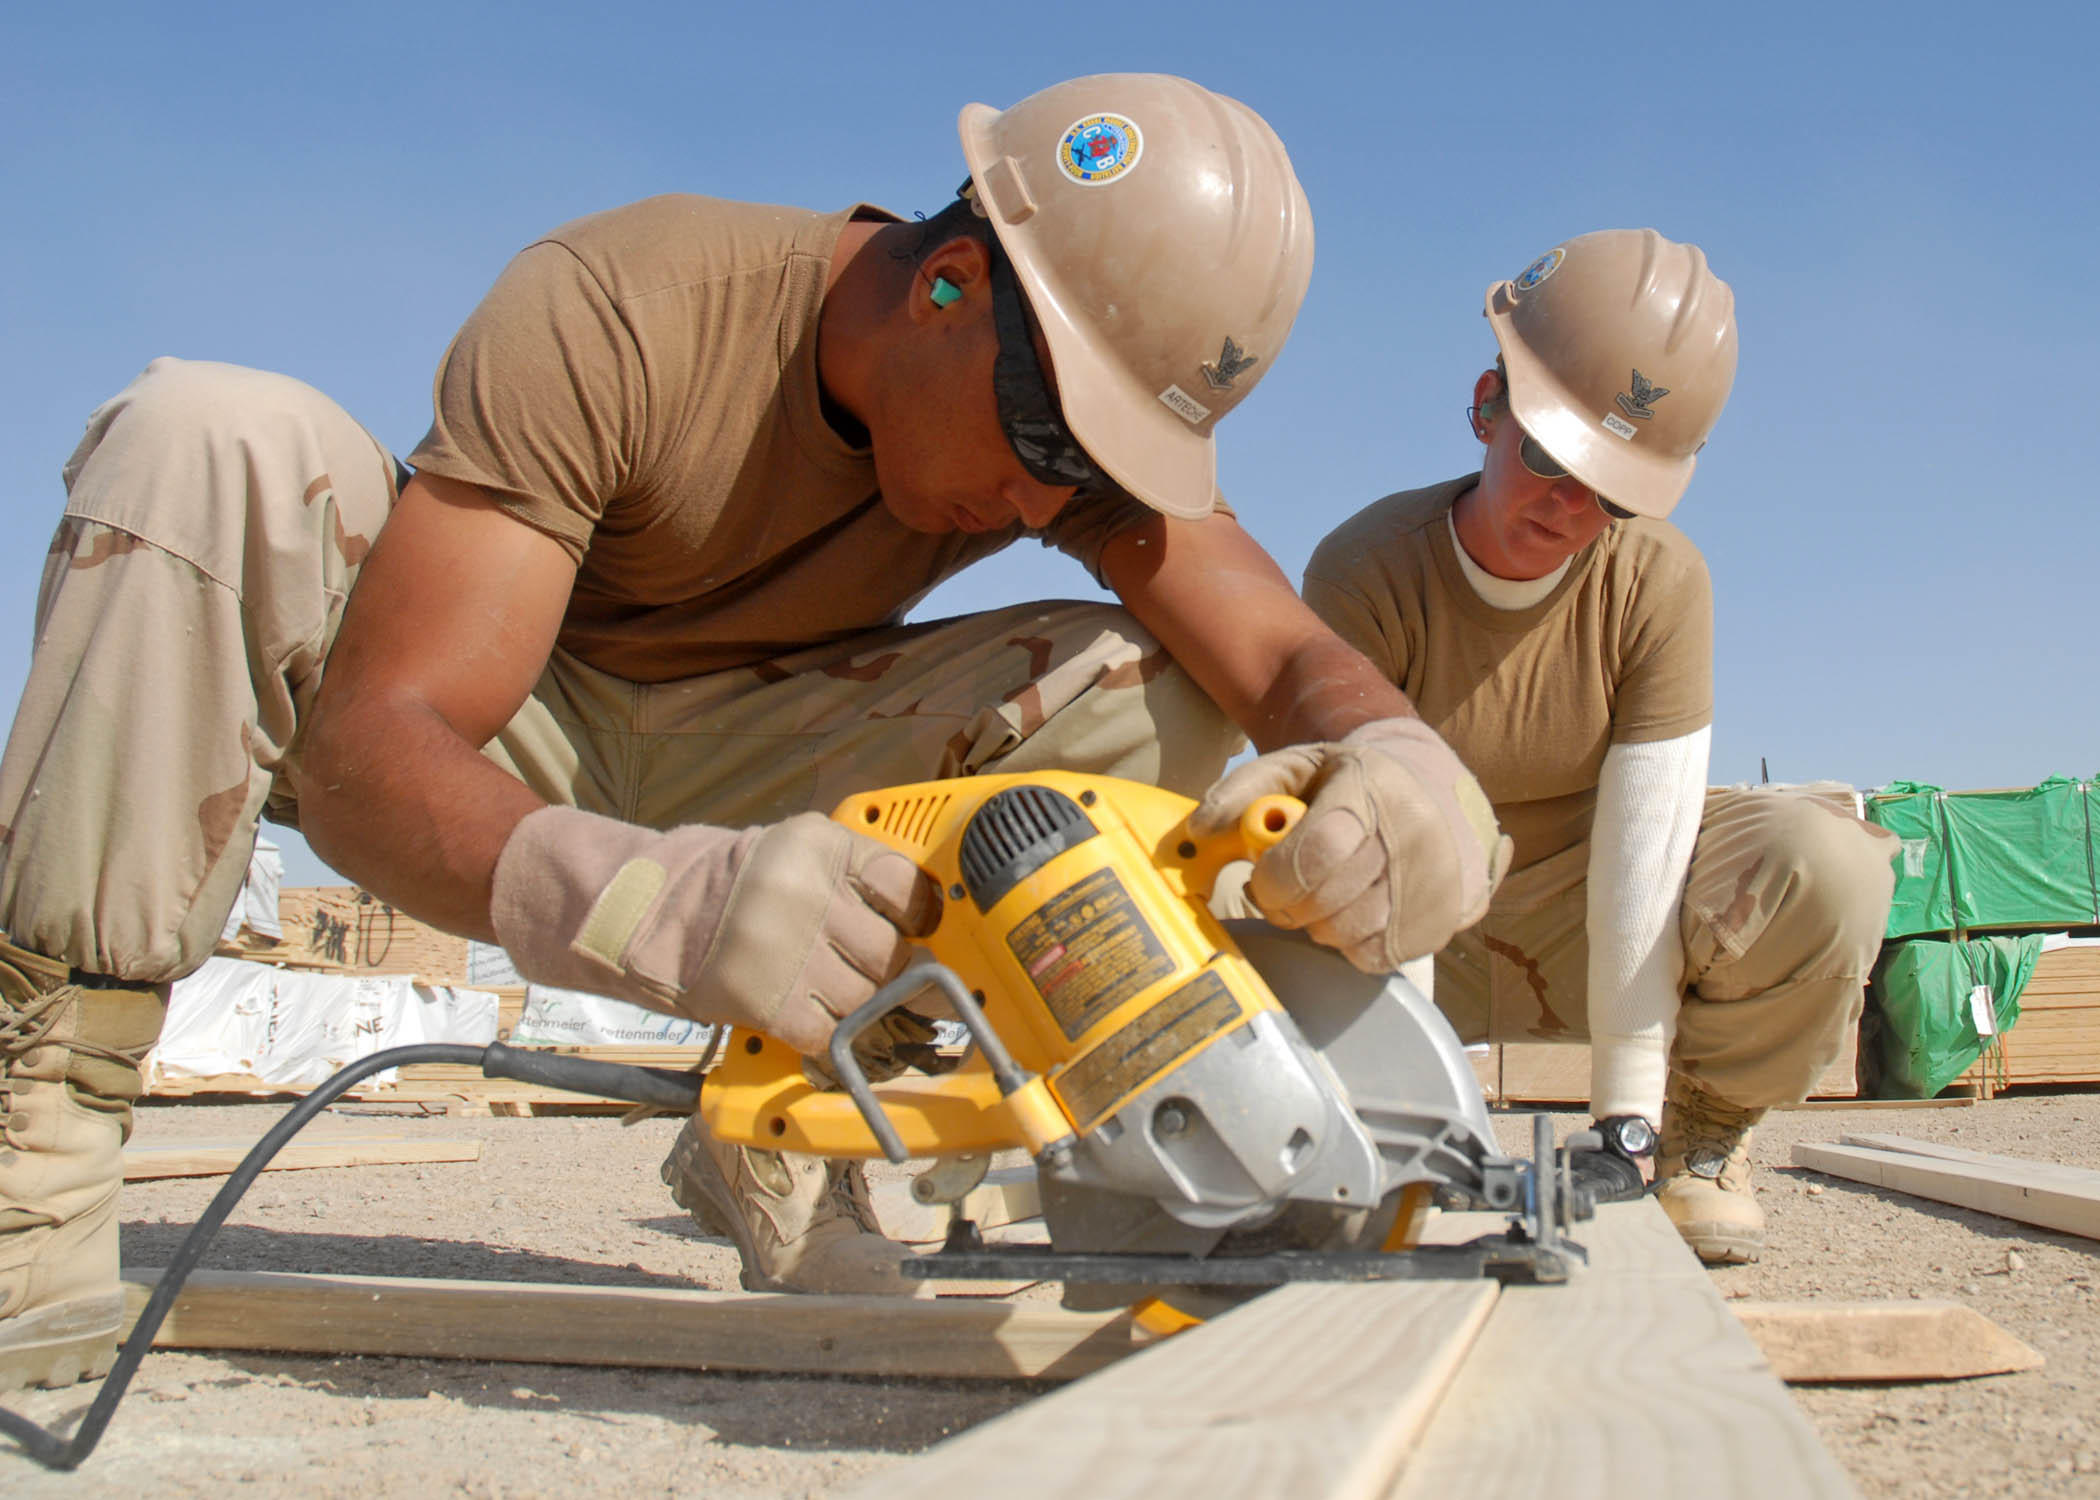 To Residential Construction Study Looks At Wage Fraud In Residential Construction Industry Wamc